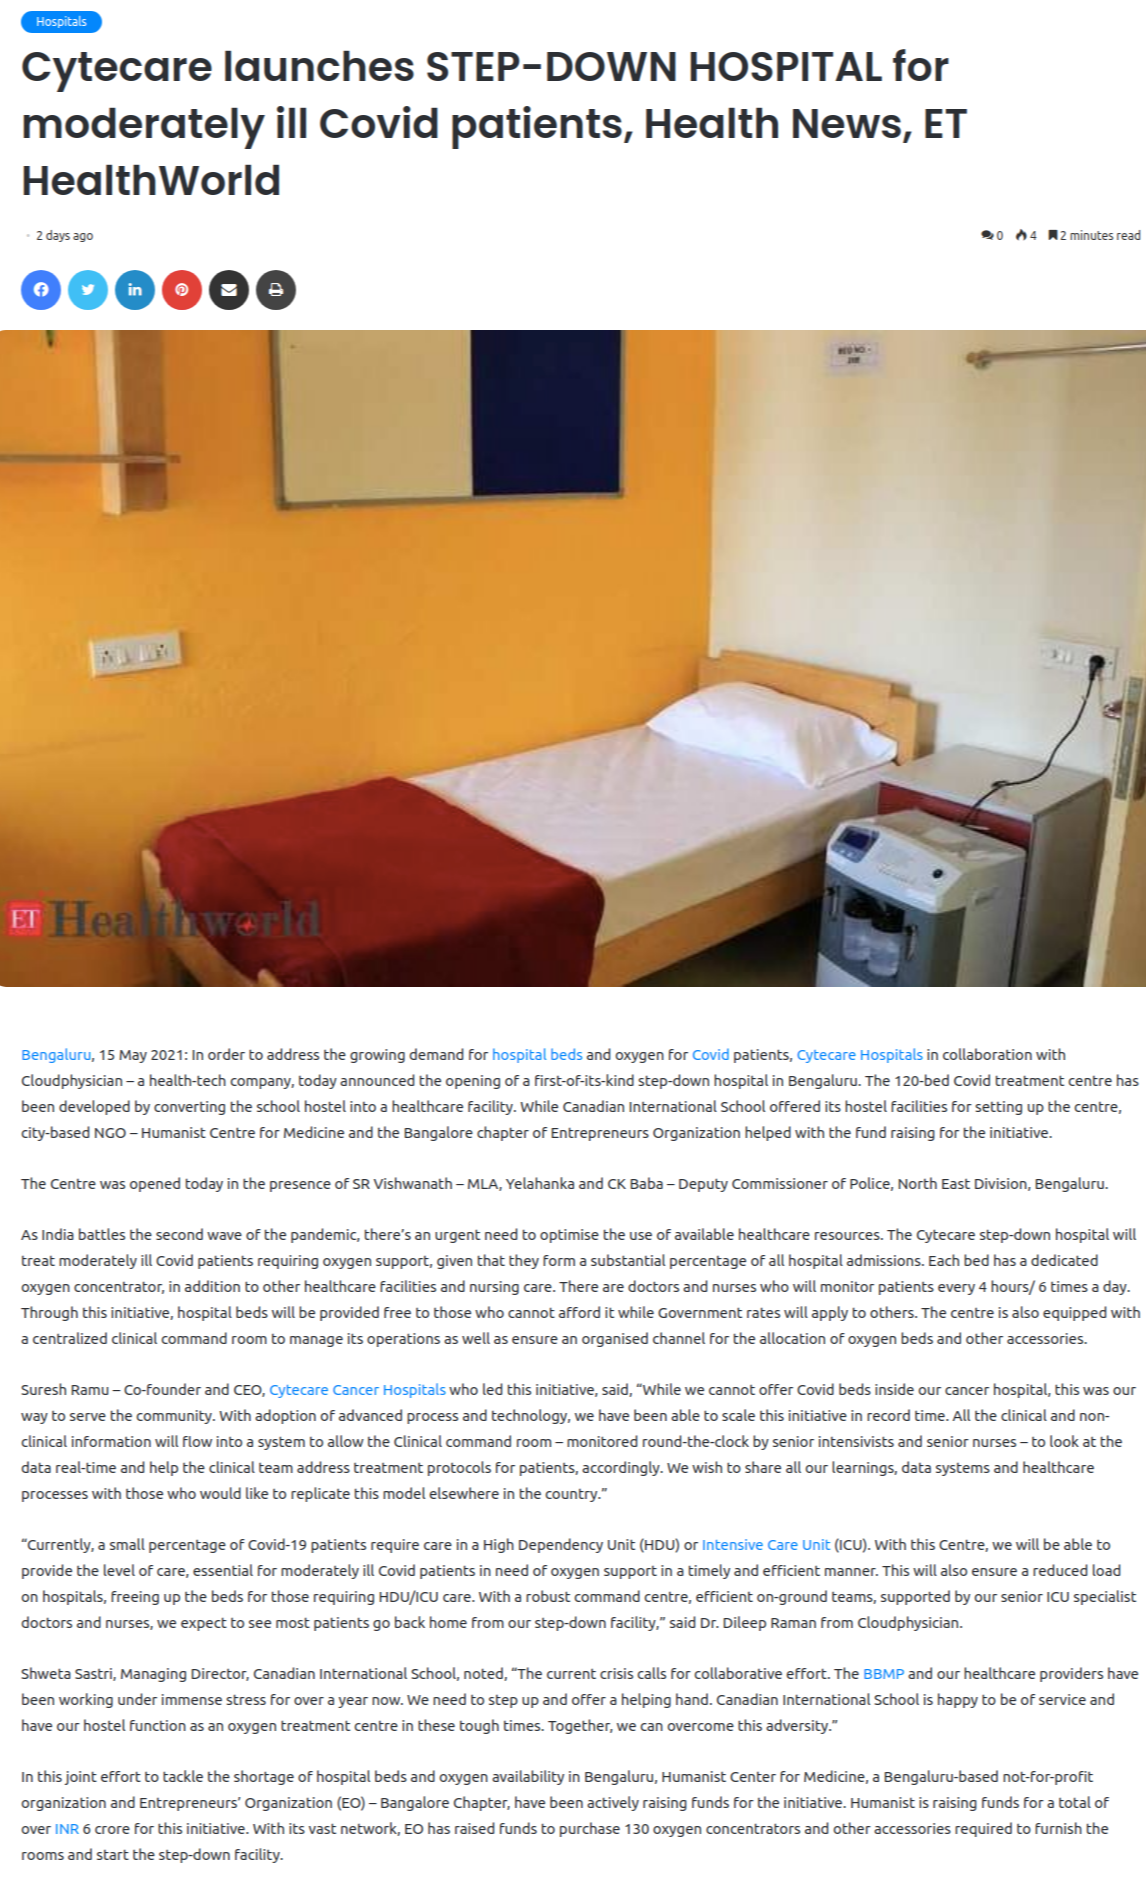 Cytecare launches STEP-DOWN HOSPITAL for moderately ill Covid patients, Health News, ET HealthWorld